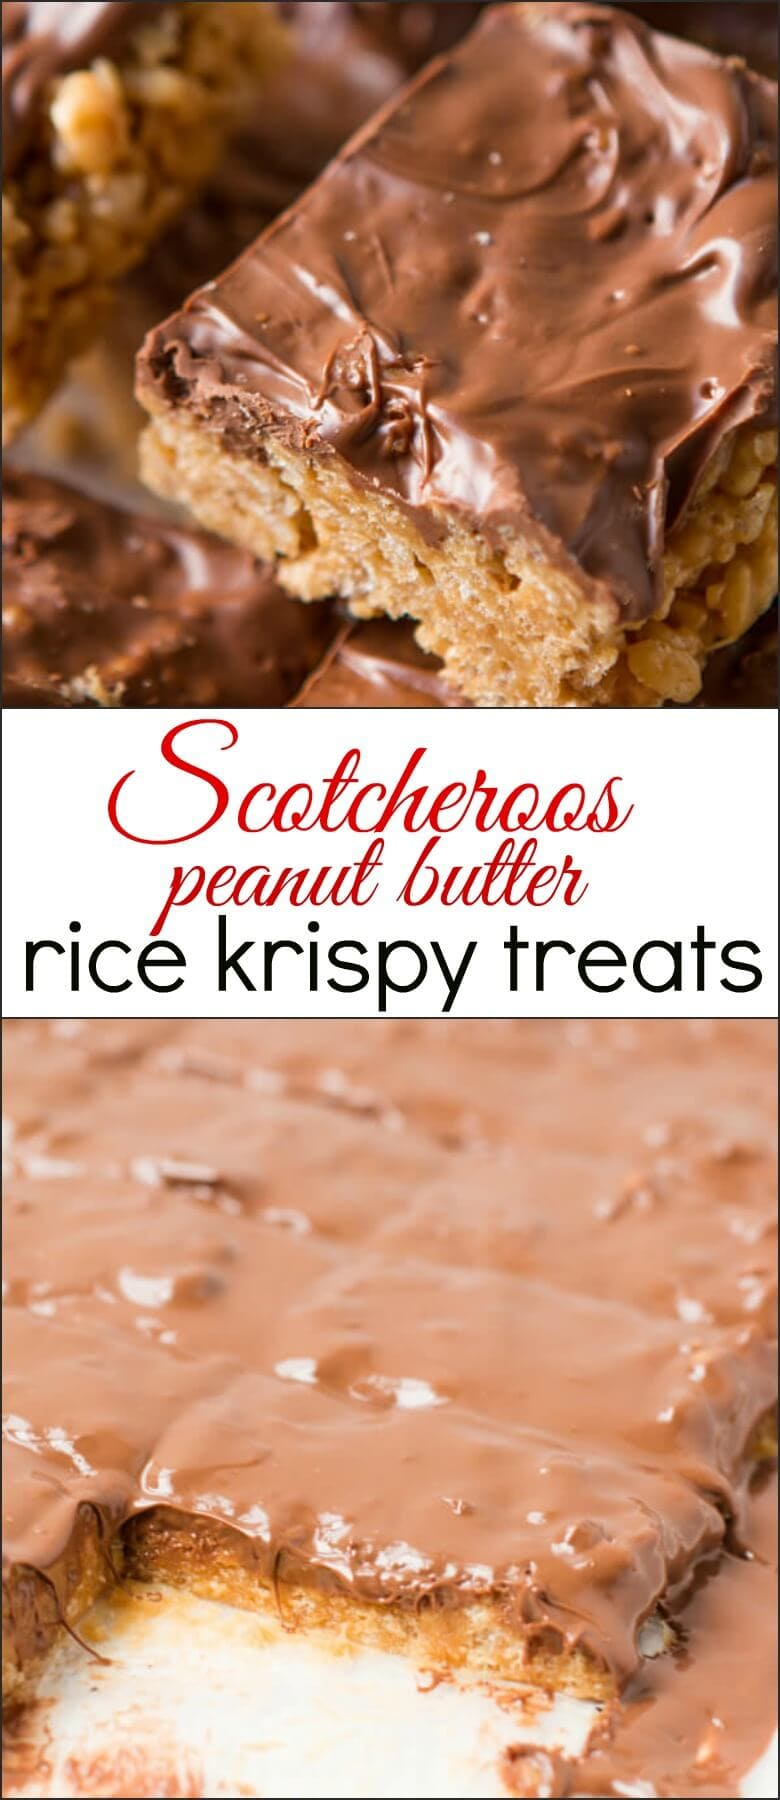 This scotcheroos rice krispy treats recipe is seriously such an addicting treat and it only takes a couple of ingredients to make it! peanut butter, rice krispies, butterscotch chips, chocolate chips